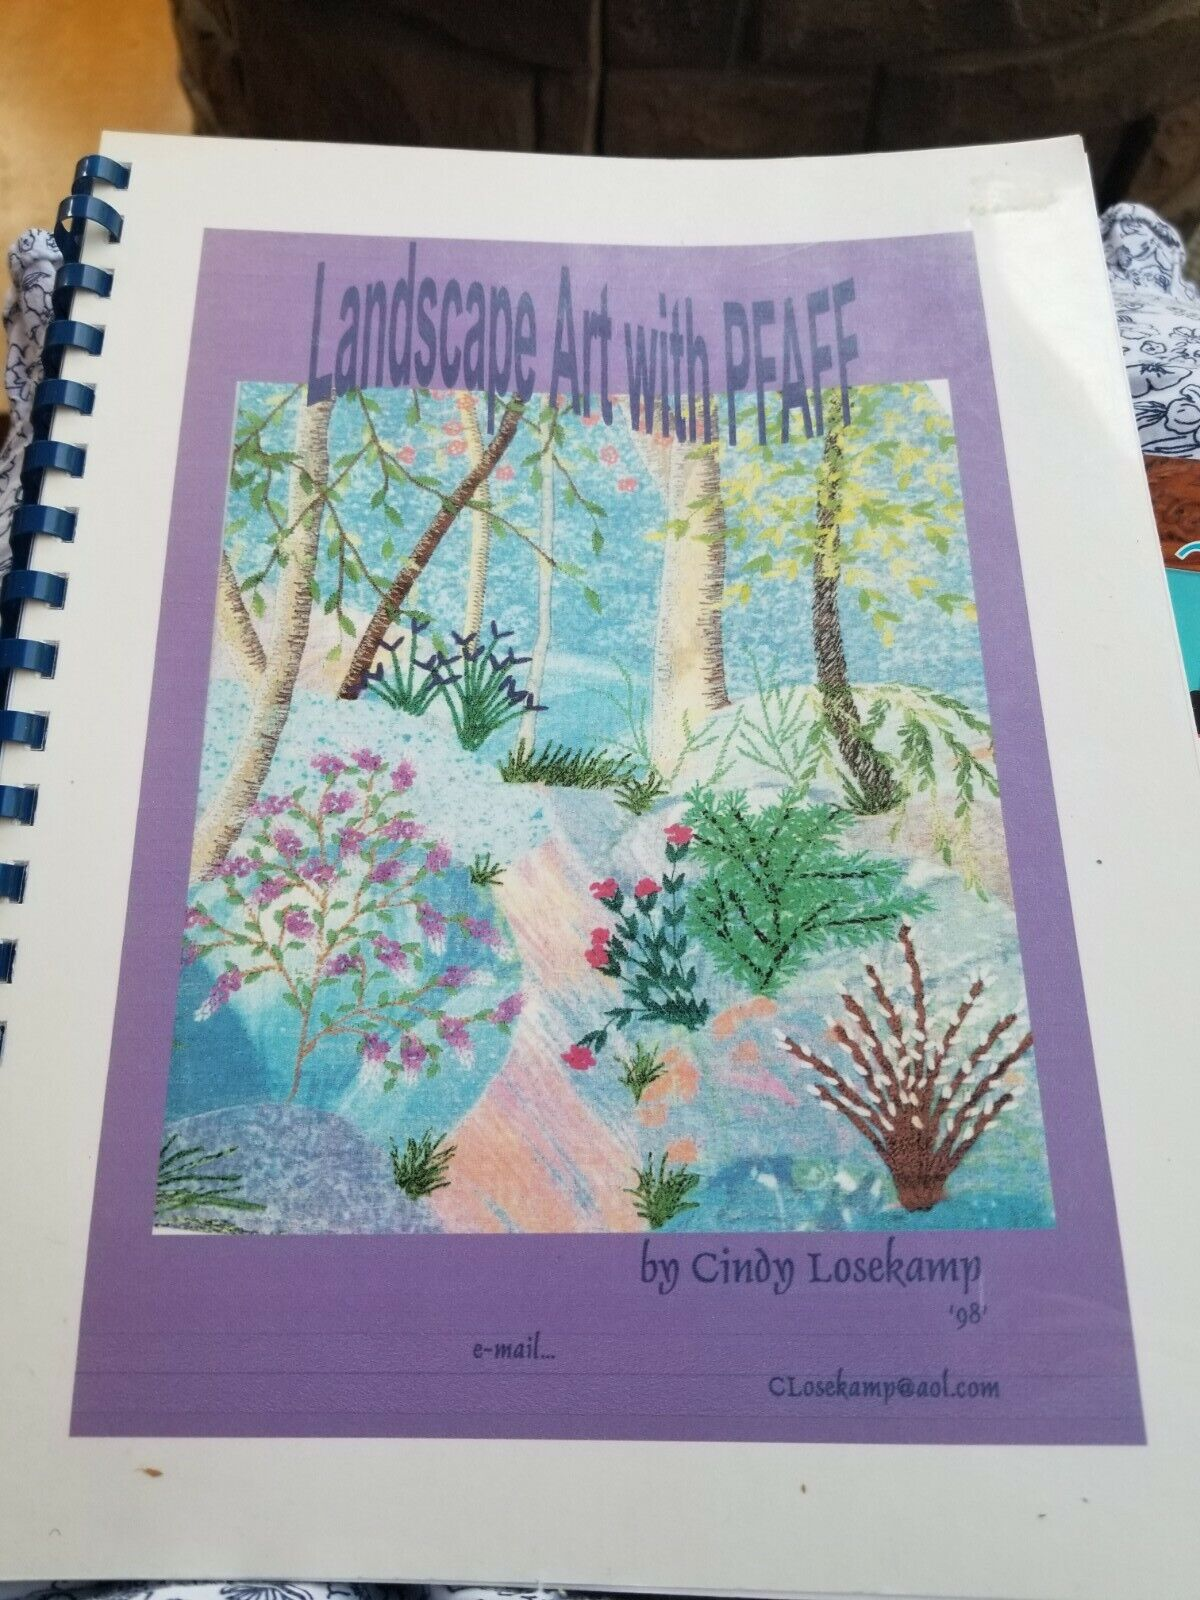 Landscape Art With Pfaff By Cindy Losekamp For Pfaff Sewing Machine - $8.00